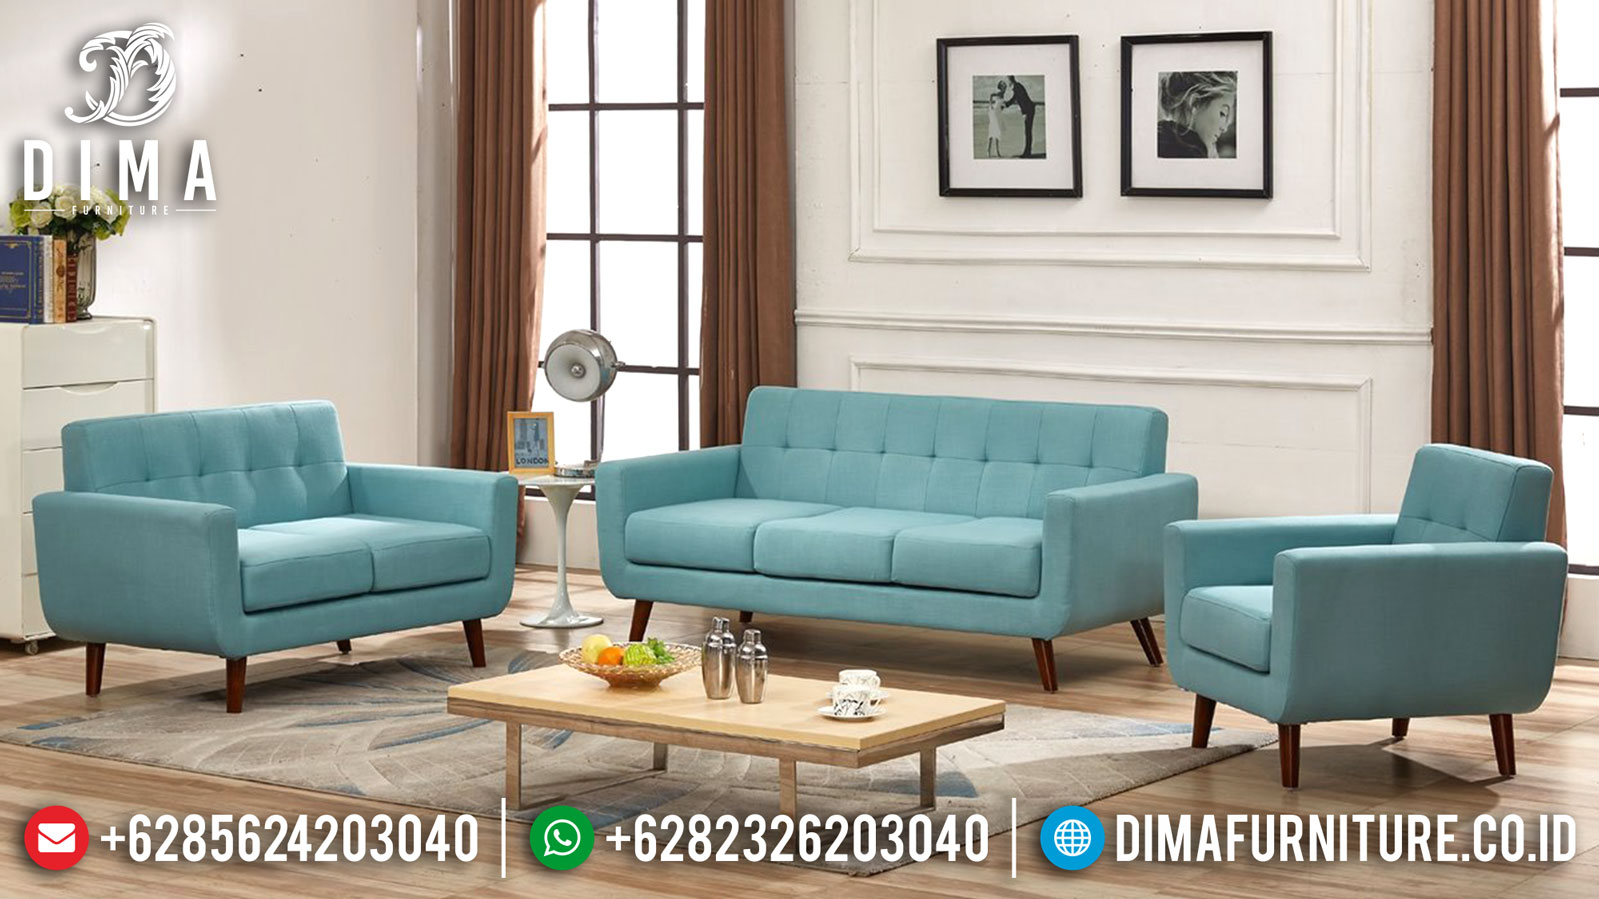 Jual Sofa Tamu Minimalis Jepara Classic Design New French Style Retro BT-0865